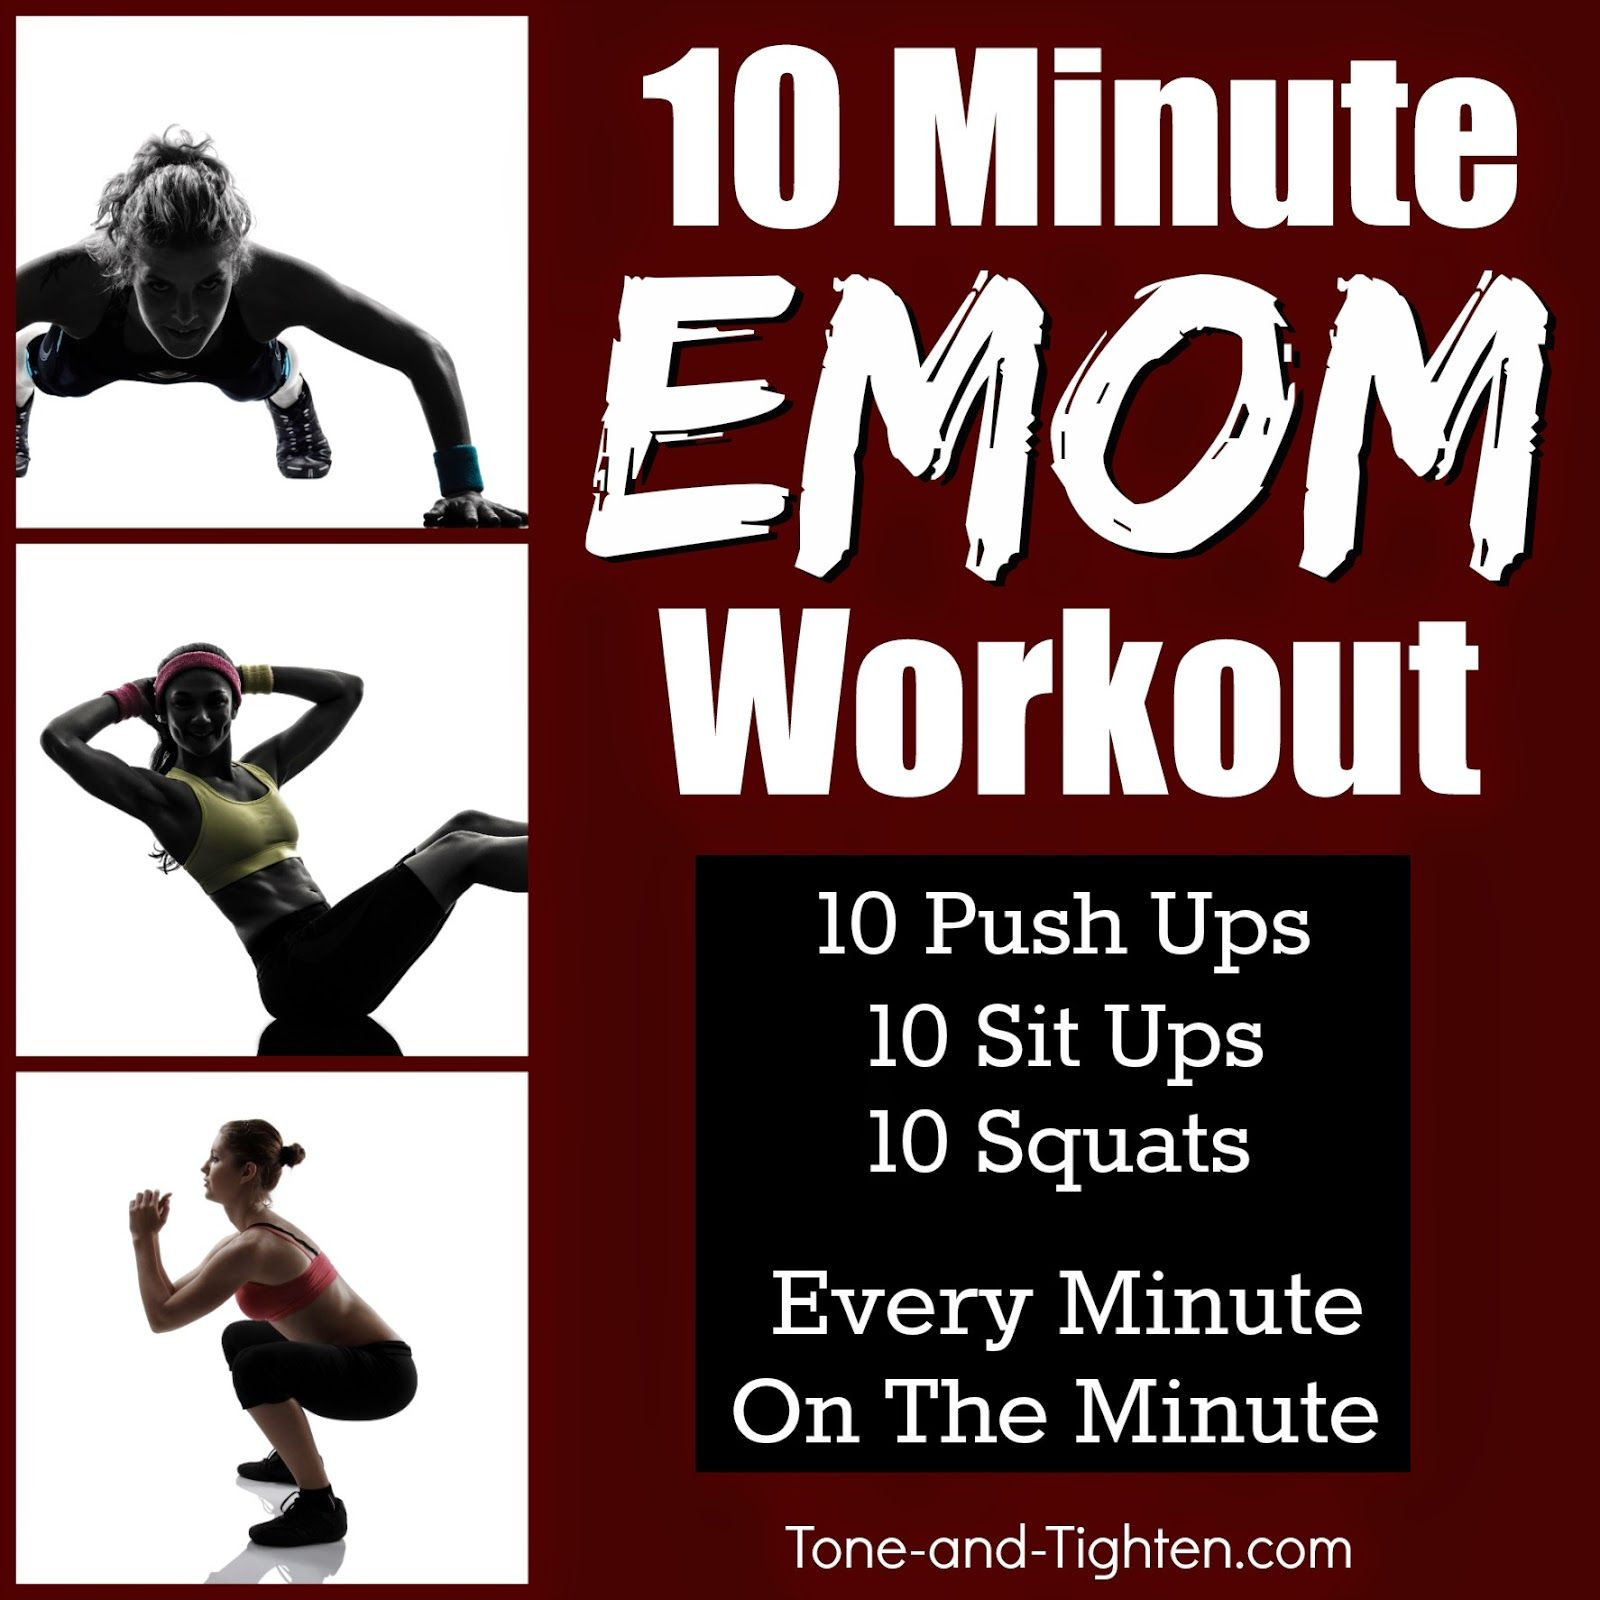 10 Minute Emom Workout Shred It At Home With No Equipment Required Emom Workout Workouts Without Equipment Best Body Weight Exercises